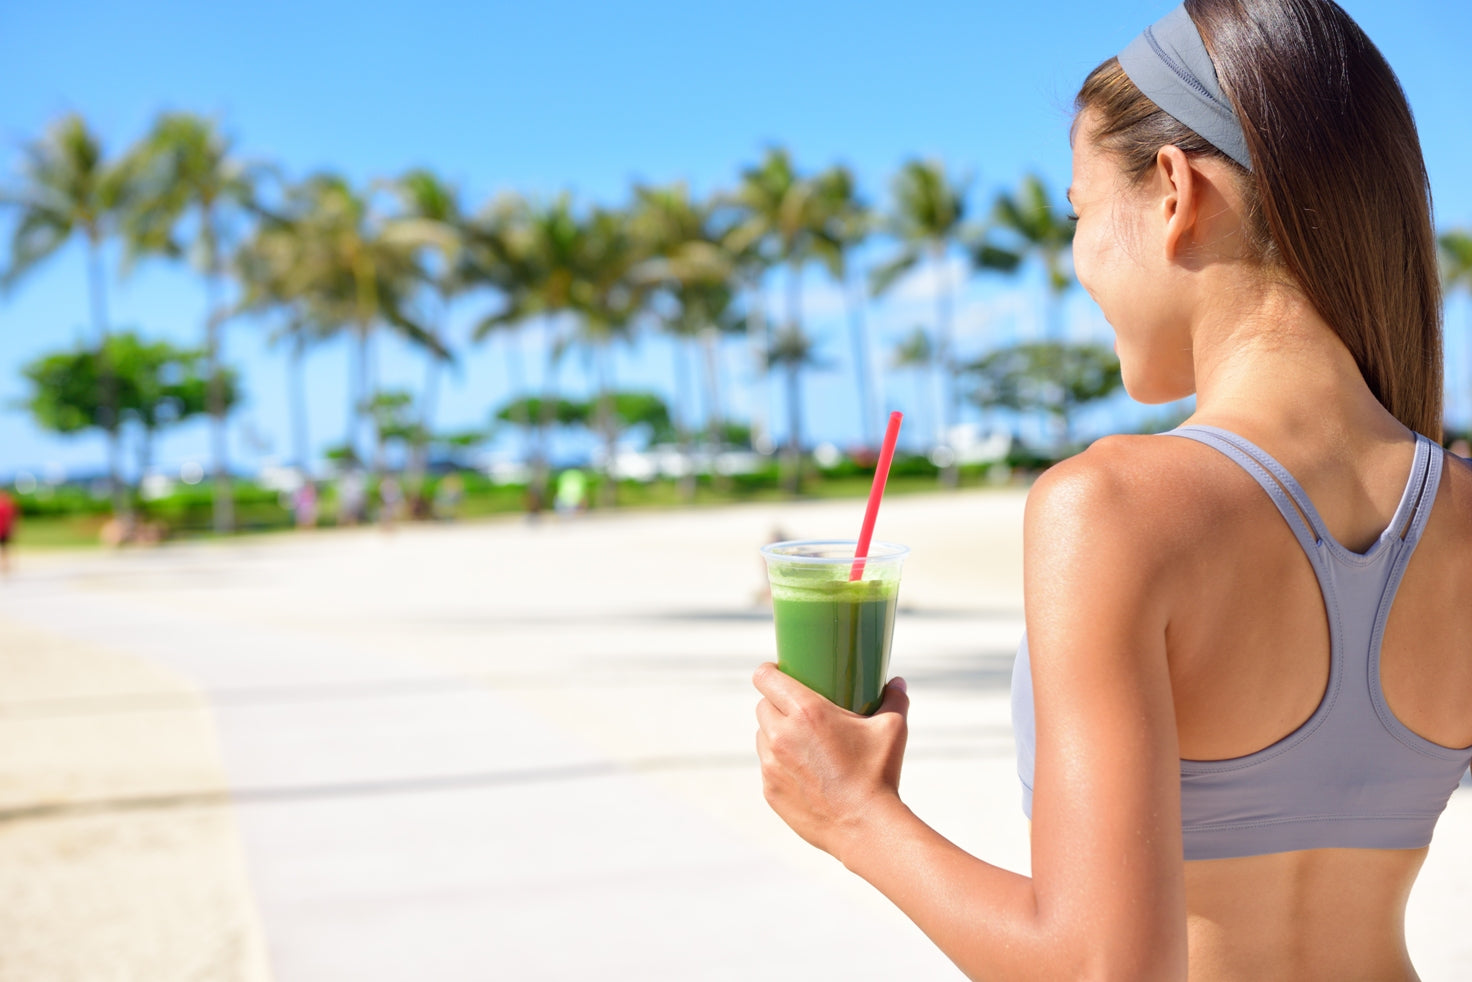 Green smoothie on a sunny beach